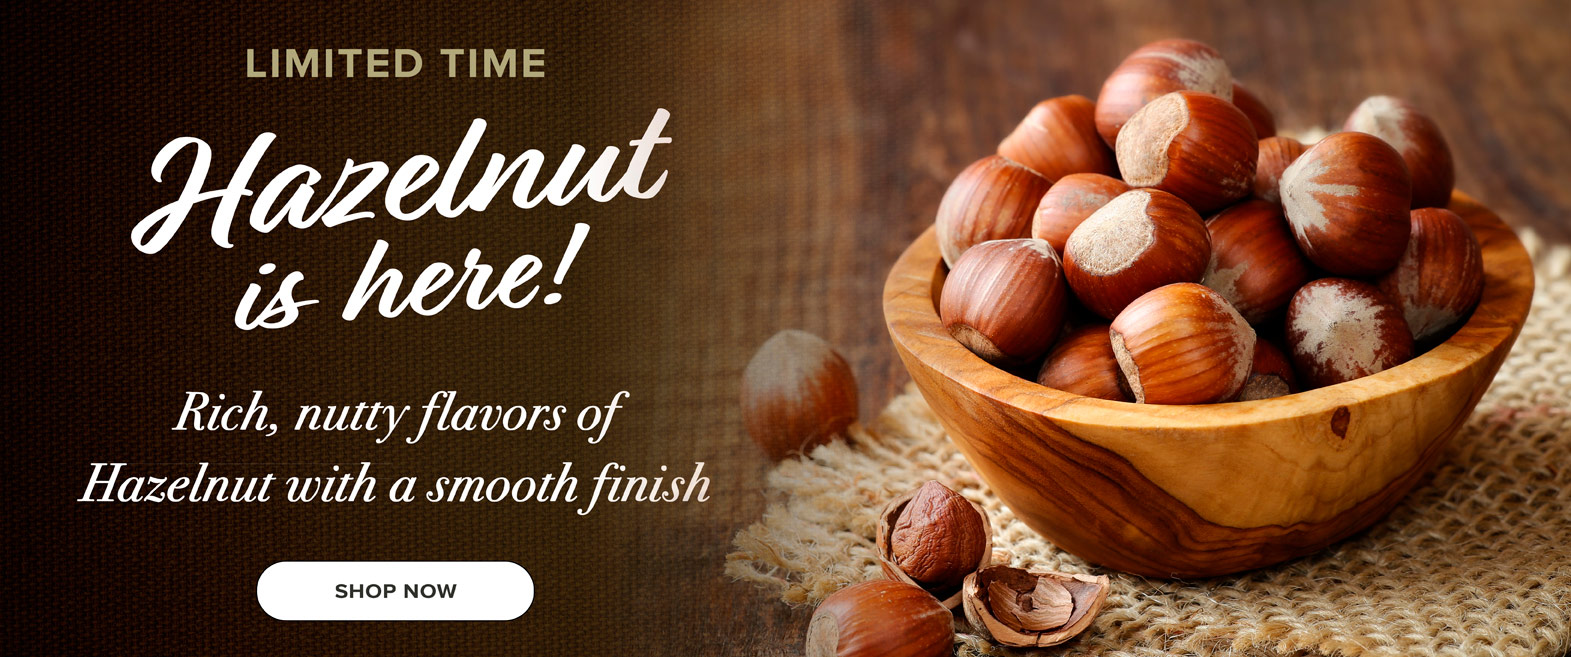 Hazelnut is here.  Rich nutty flavors of Hazelnut with a smooth finish.  Click to shop online